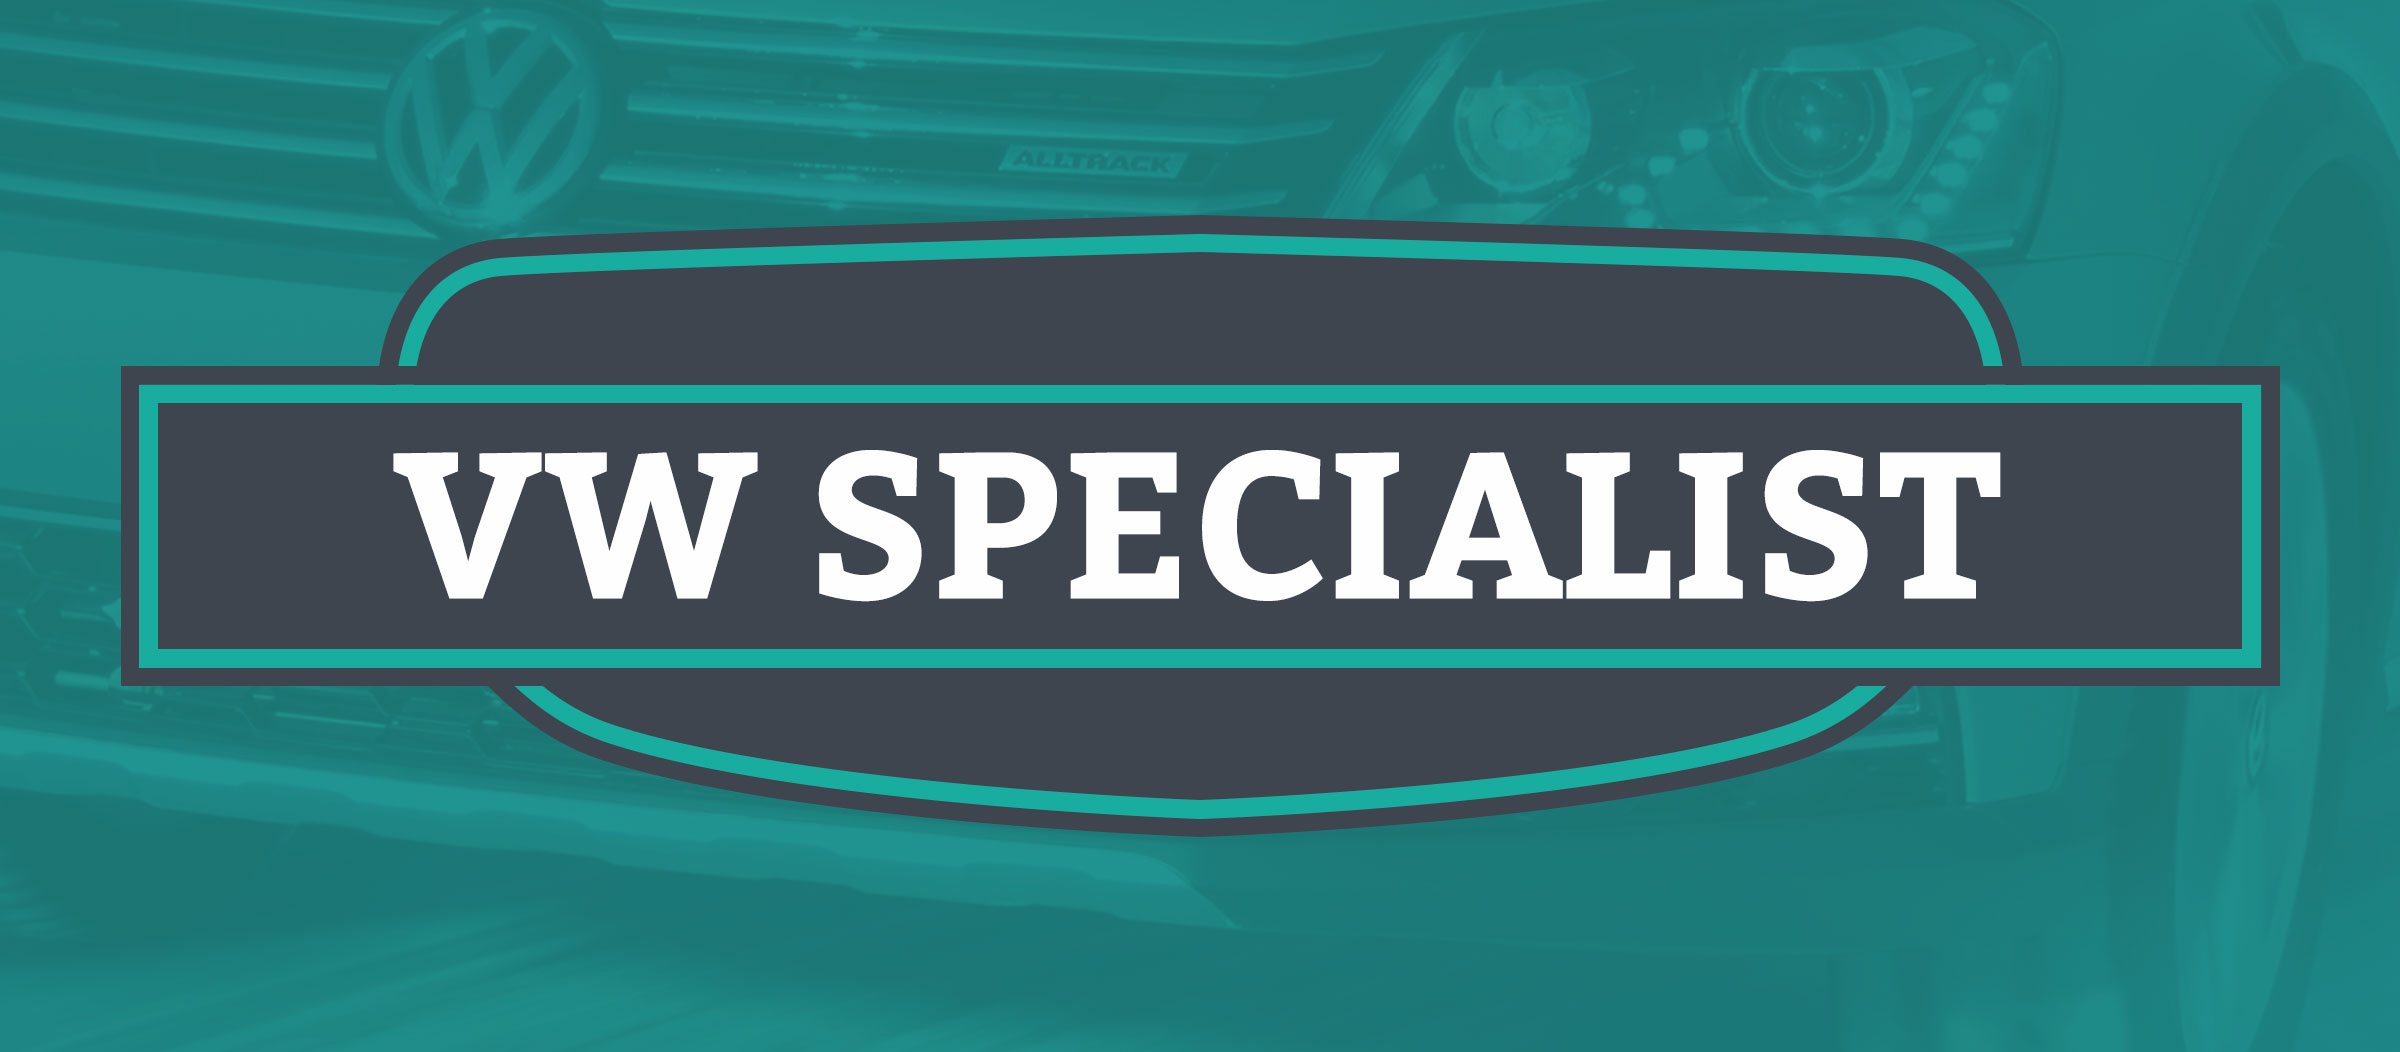 Volkswagen VW Specialists in Warrington